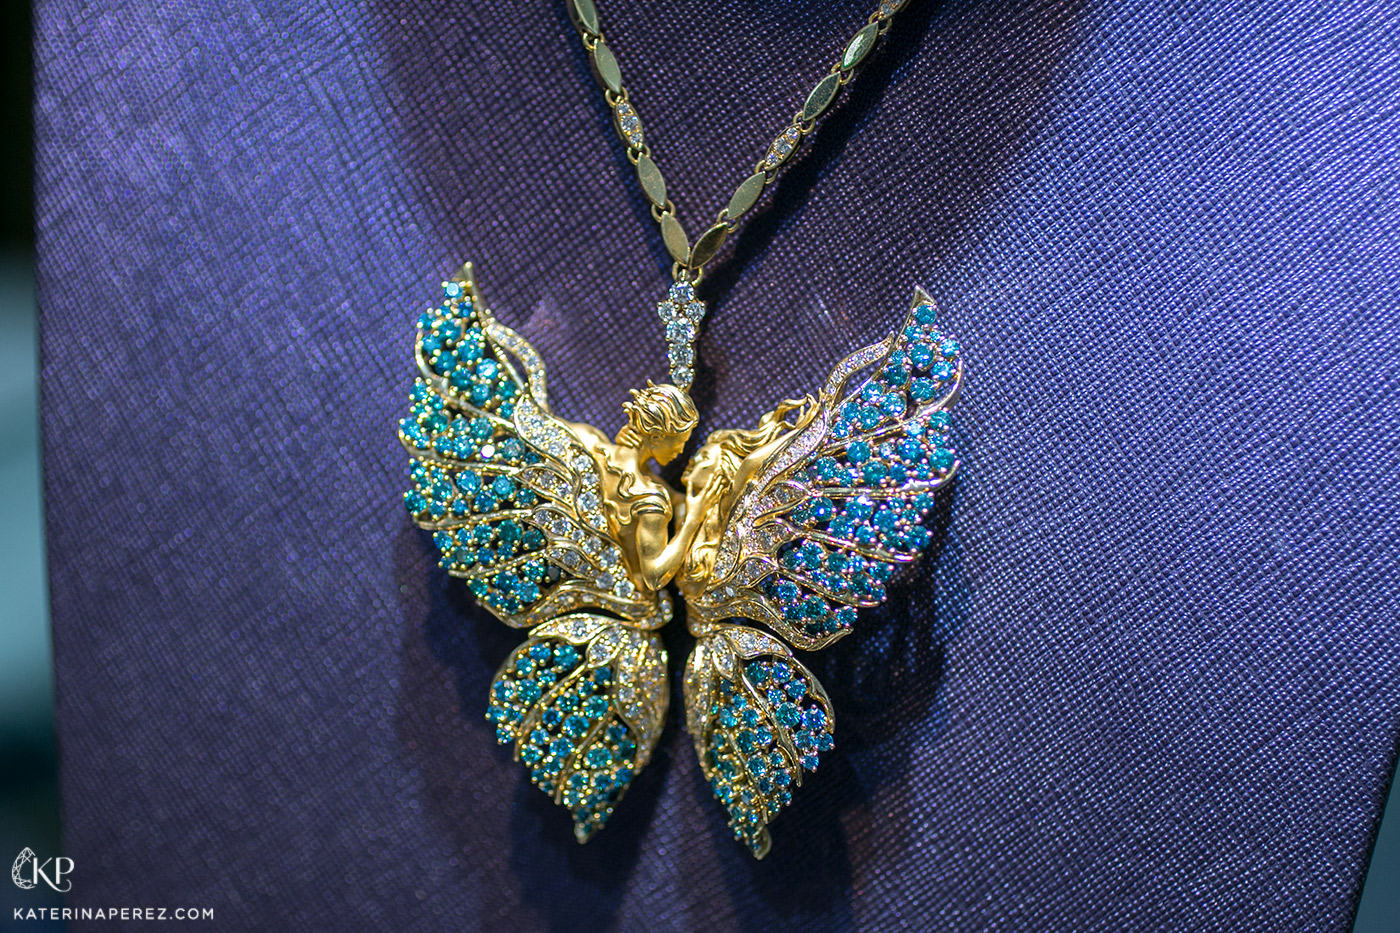 Magerit 'Butterflies in Love' necklace from the 'Eternity' collection with blue and colourless diamonds in 18k yellow gold